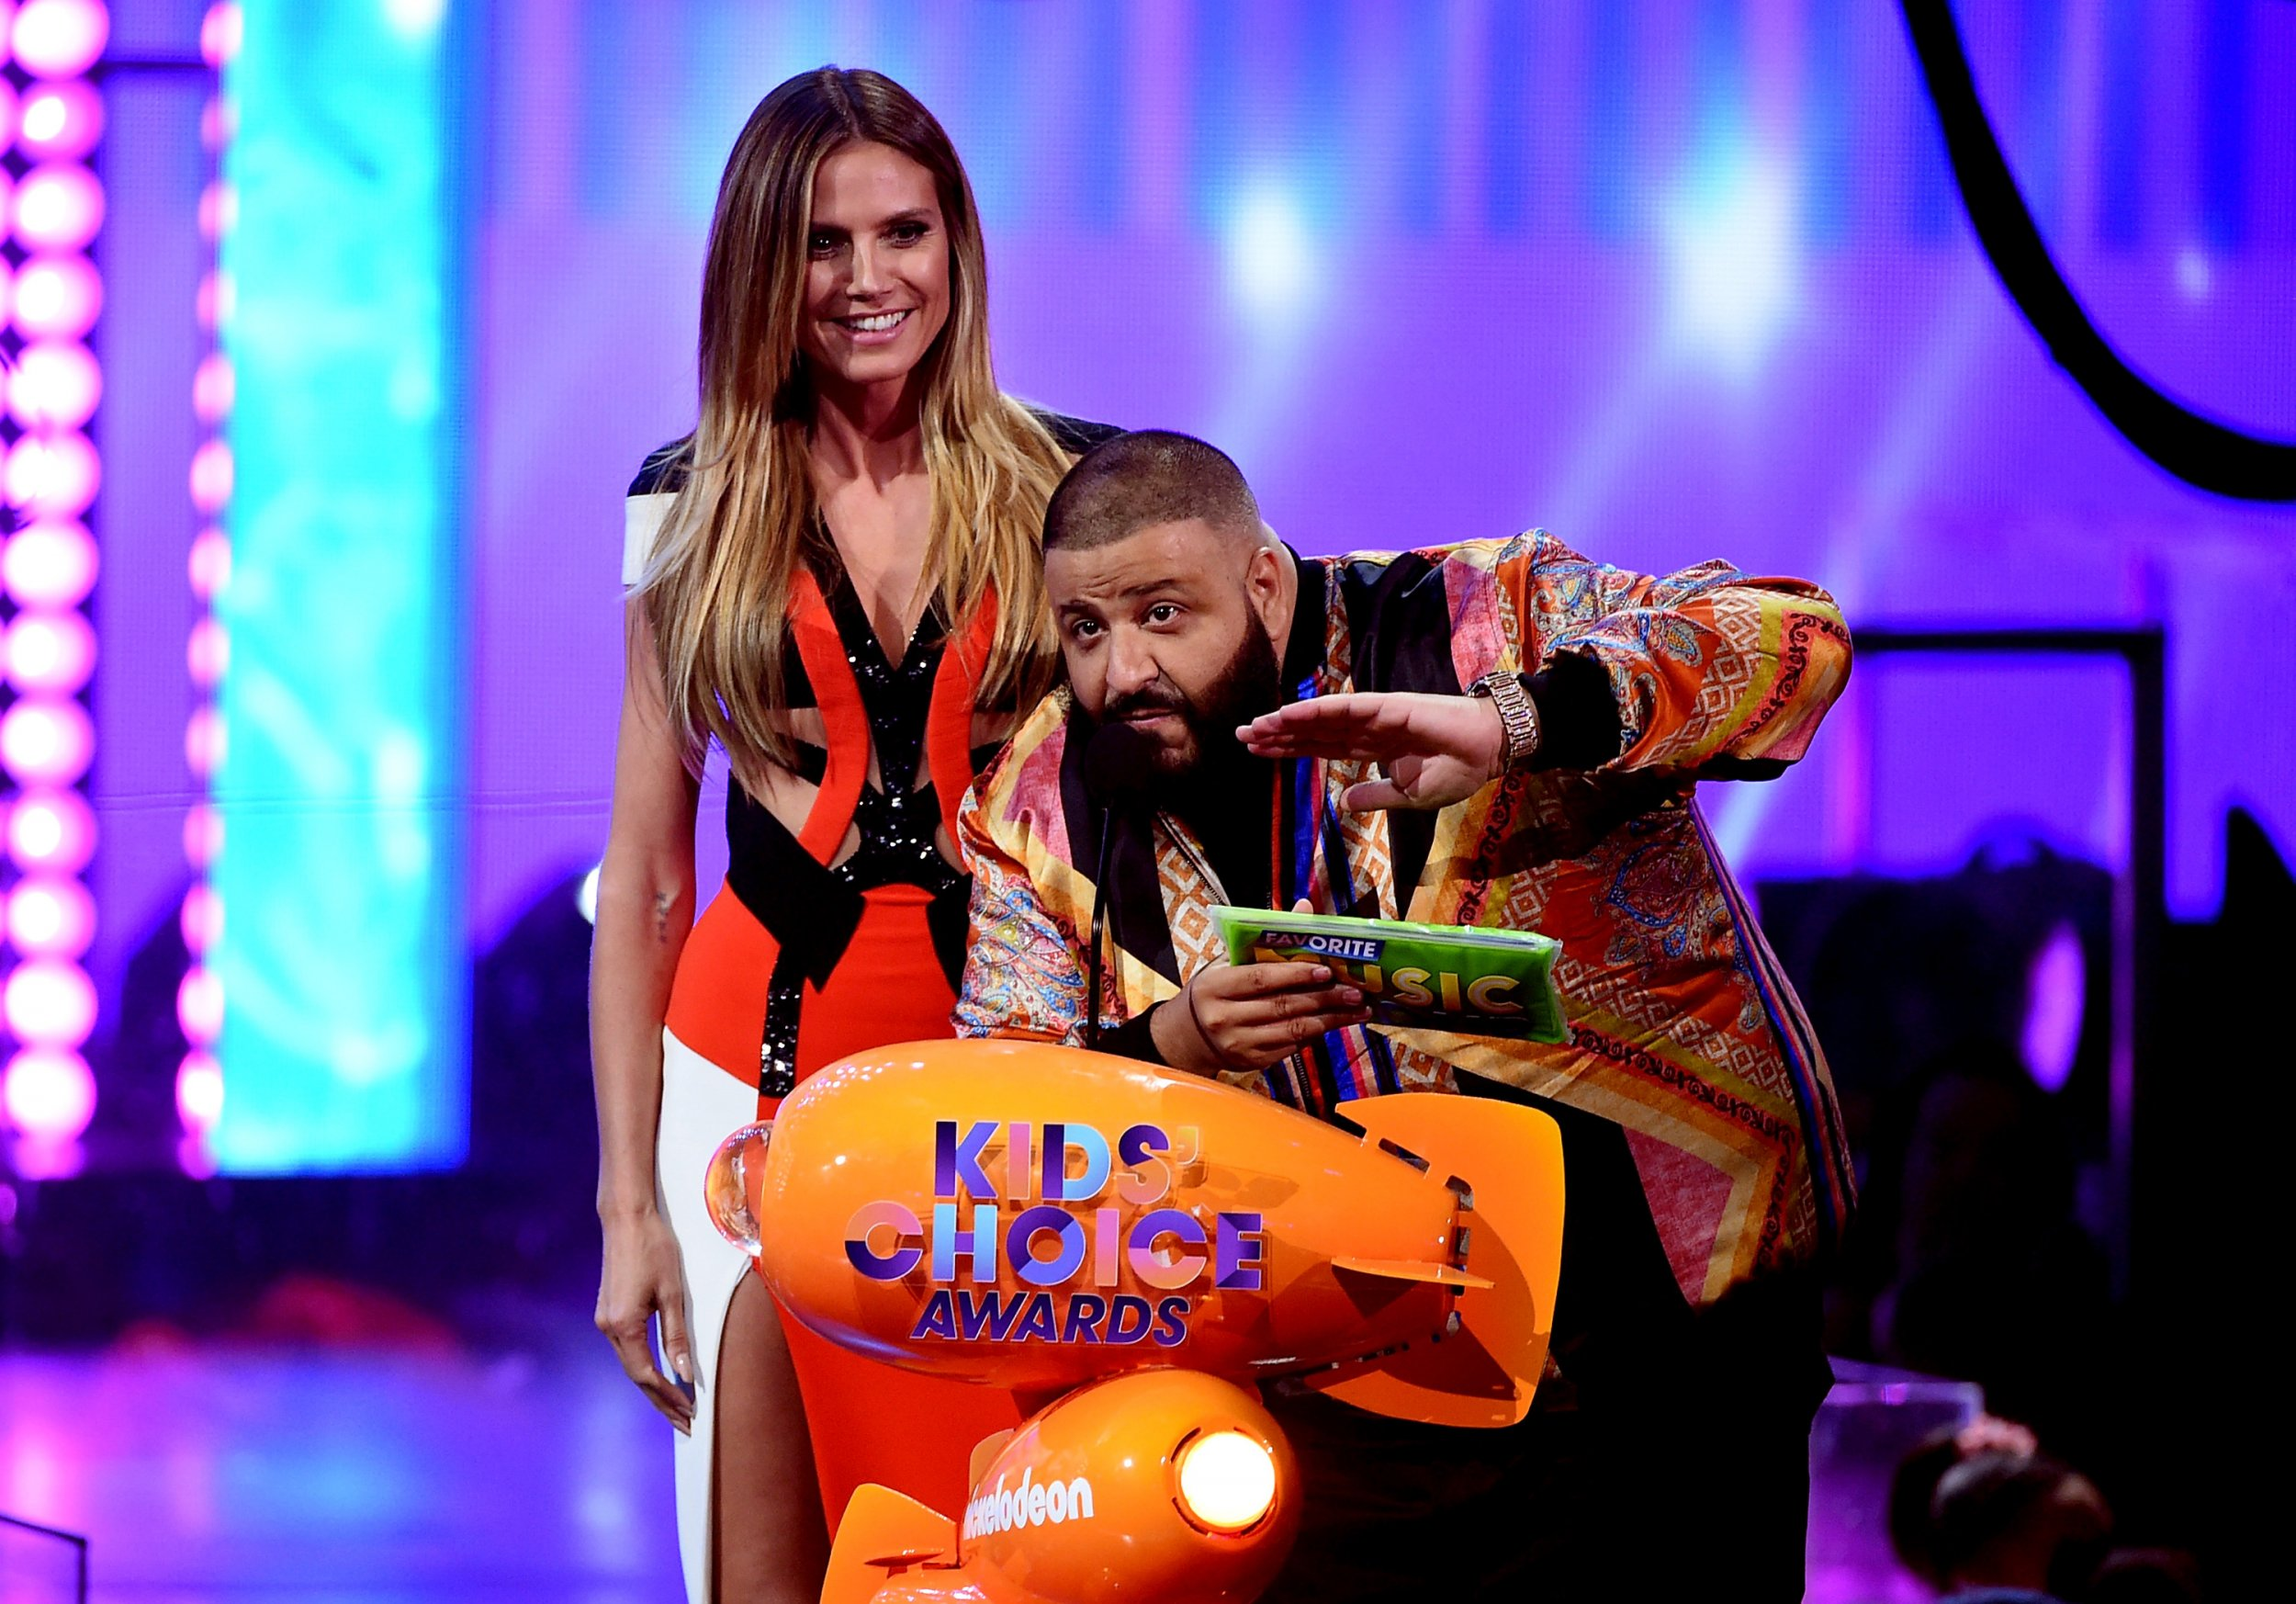 Heidi Klum and DJ Khaled at KCAs